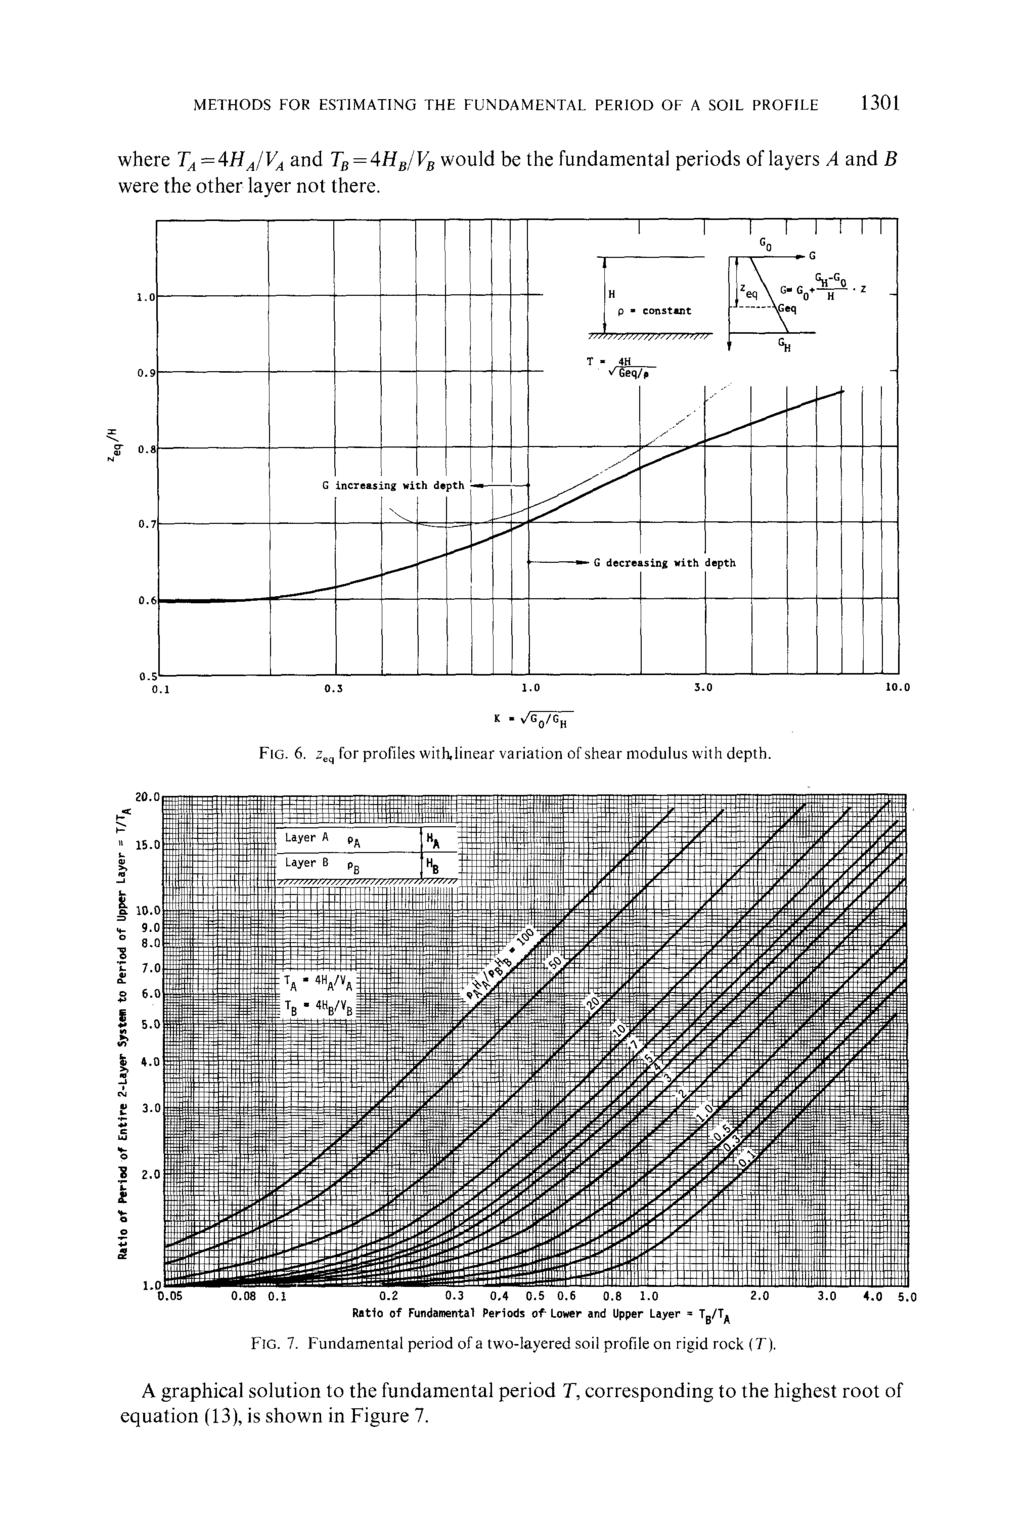 SIMPLIFIED PROCEDURES FOR ESTIMATING THE FUNDAMENTAL PERIOD